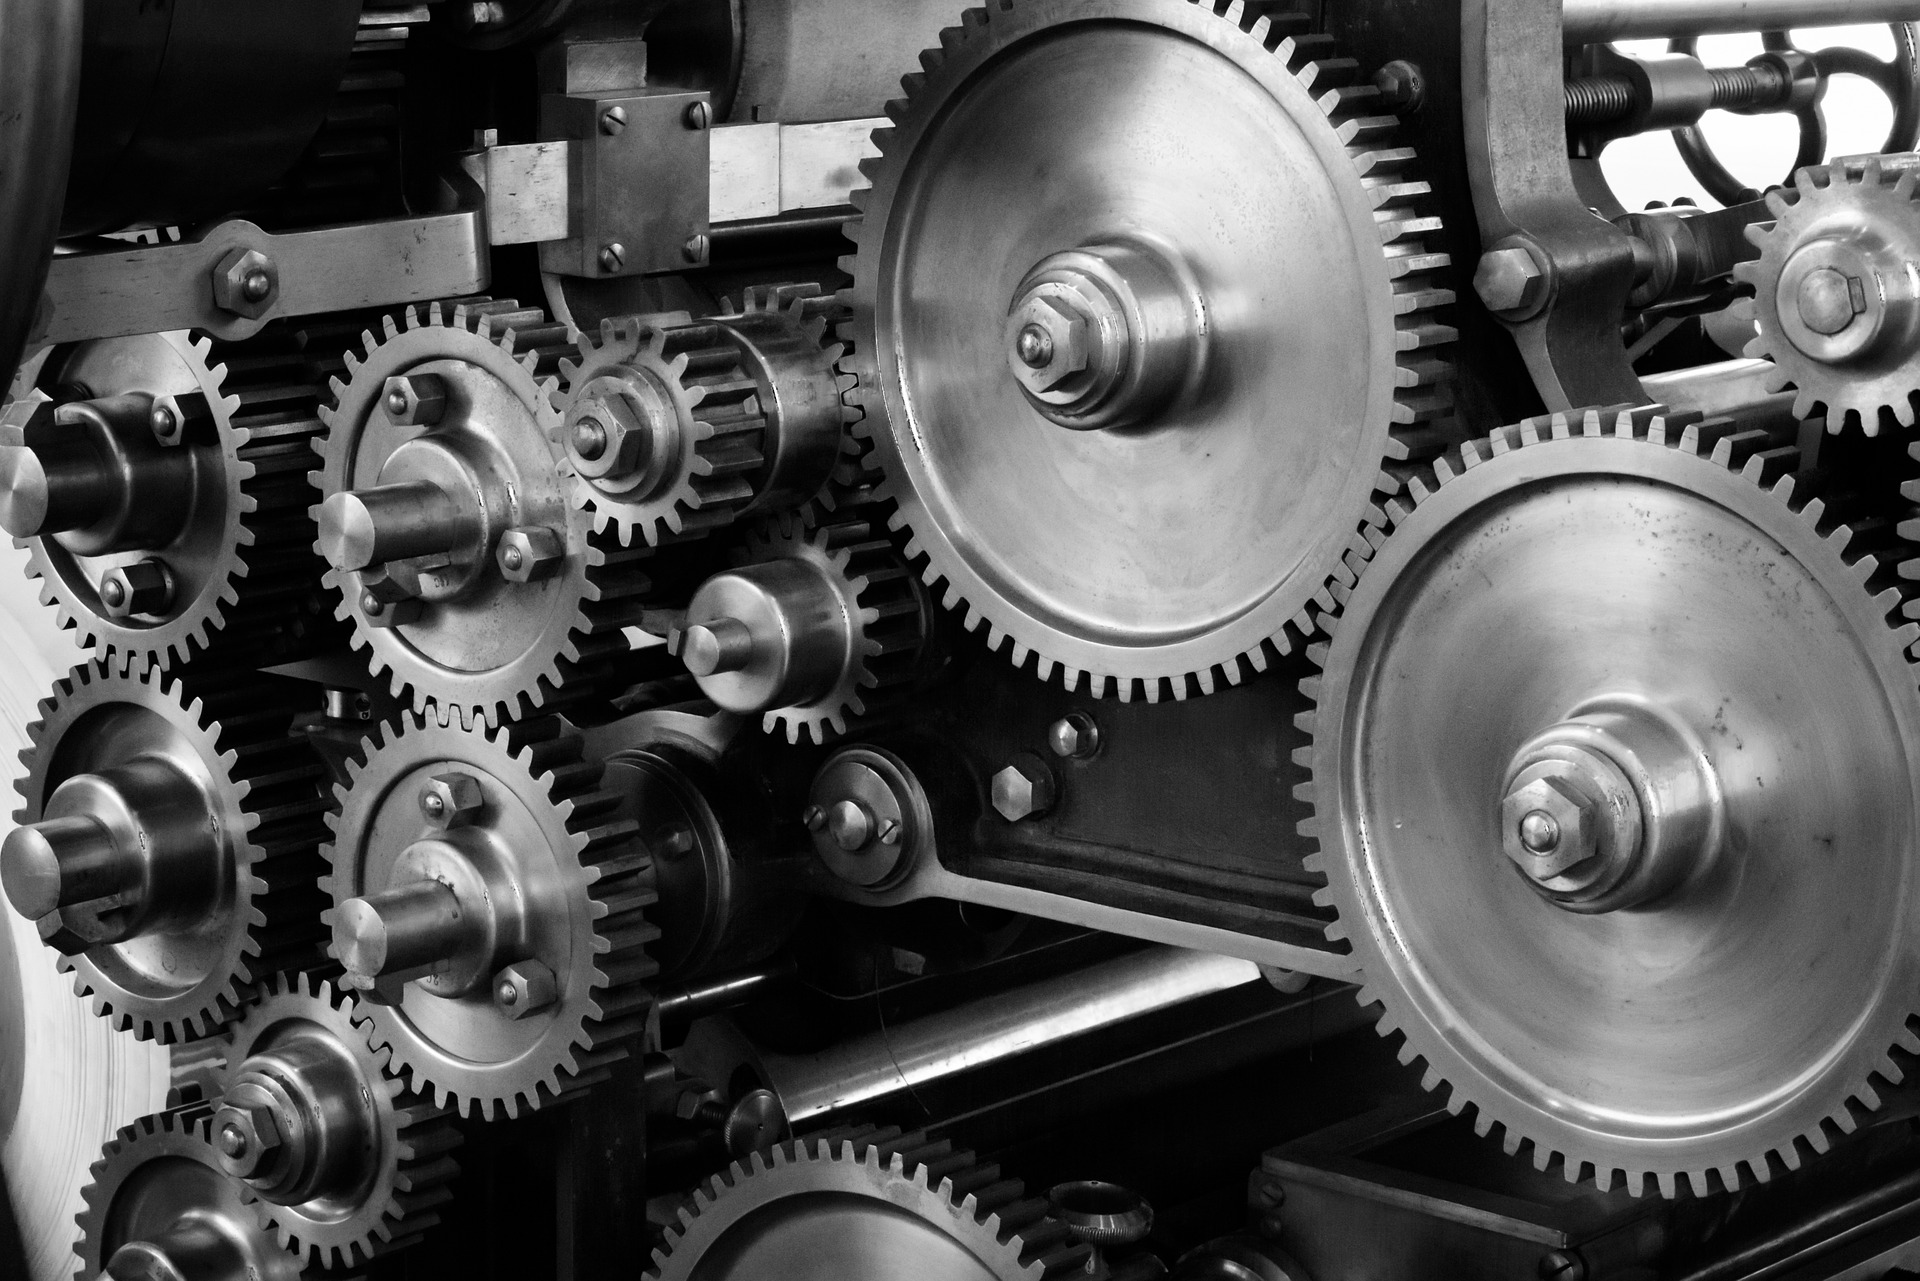 Picture of gears on a machine - TAB Bank